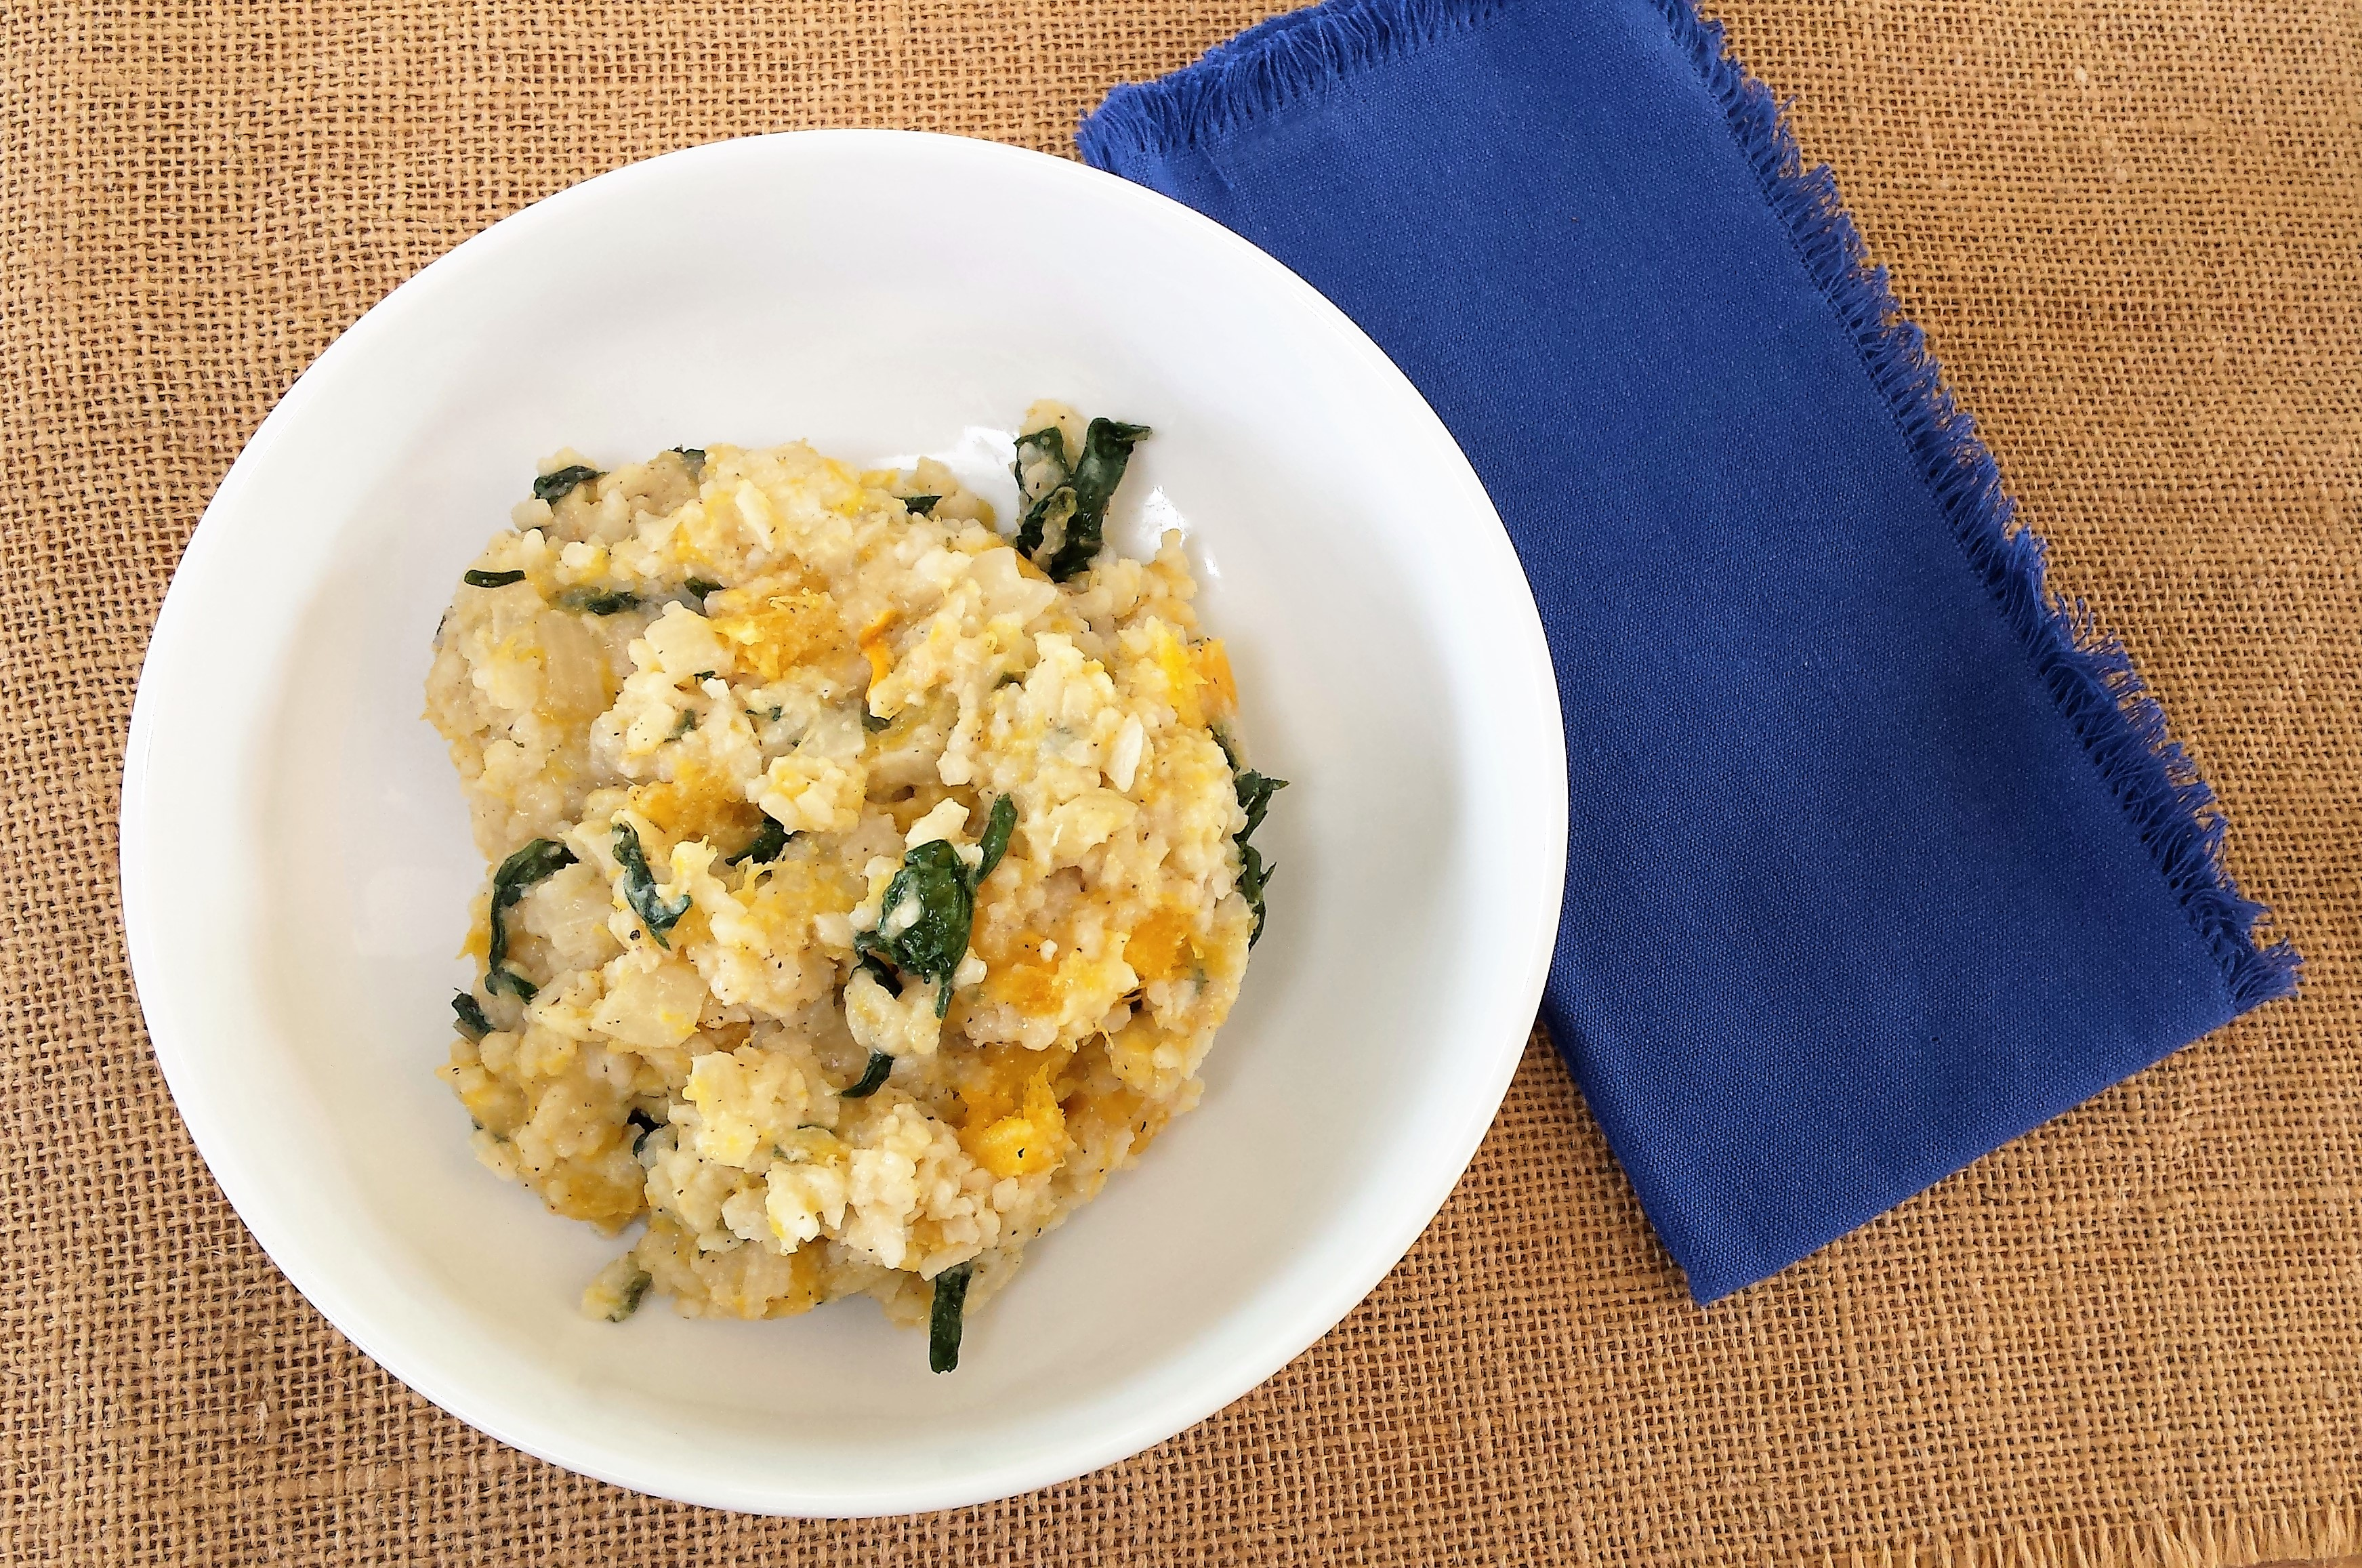 Acorn Squash and Spinach Risotto